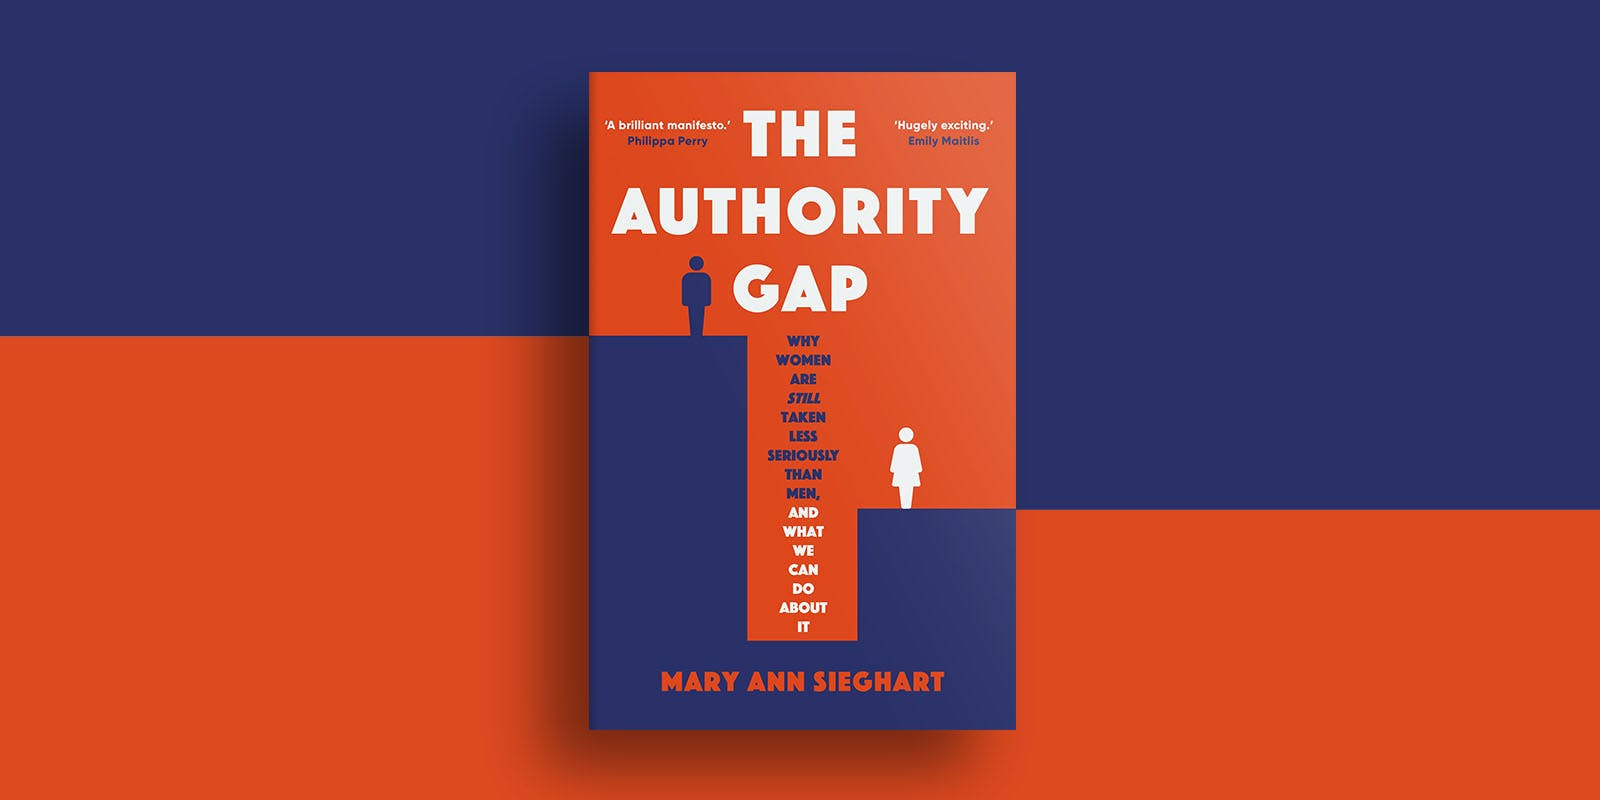 The Authority Gap by numbers